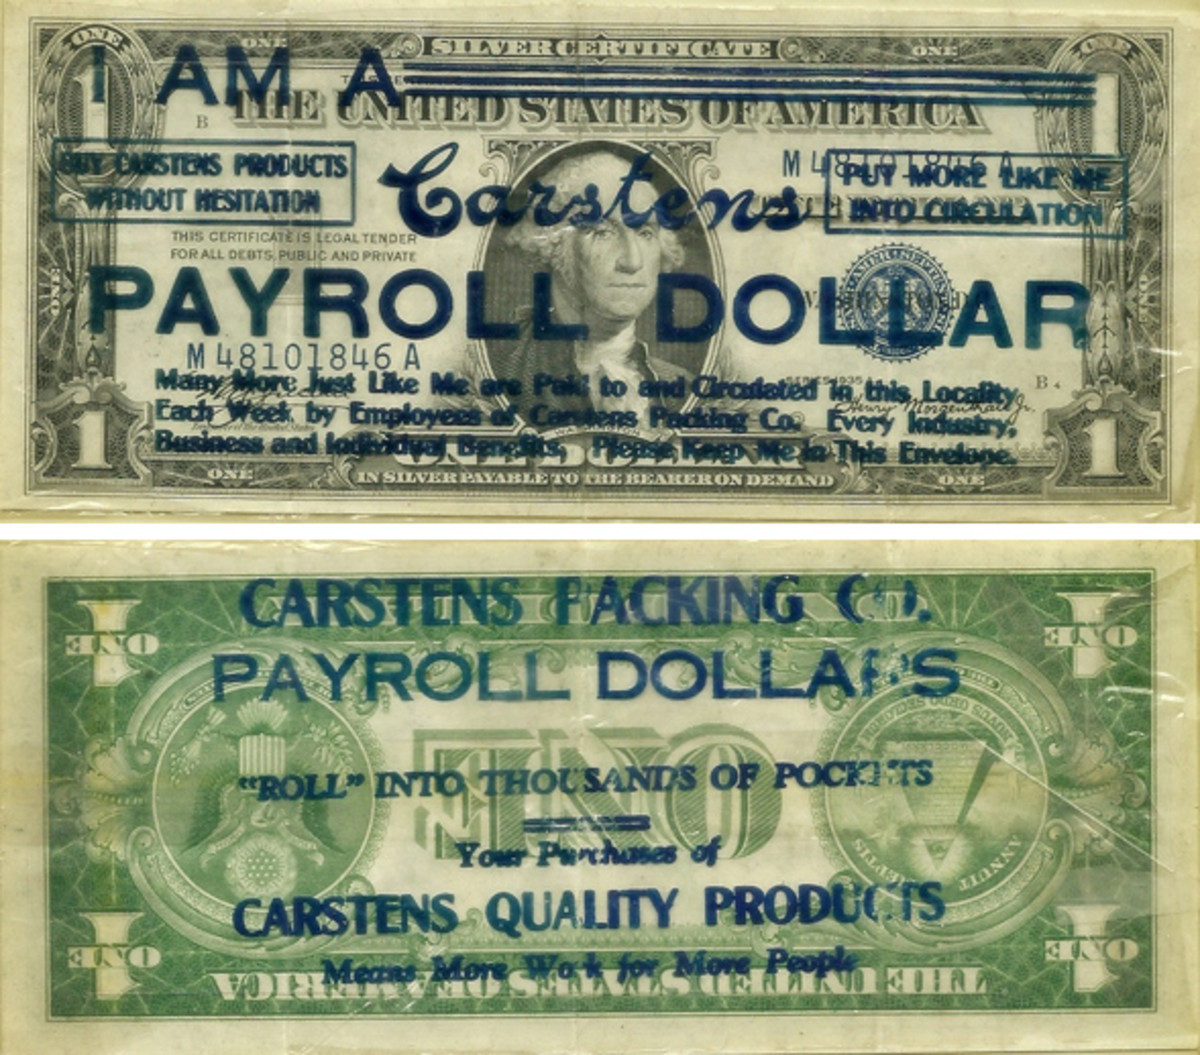 Fig. 6: There's no question where this 1935-A $1 Silver Certificate came from, with advertising for the Carstens Packing Co. appearing in big and bold placement on the front and back. Carstens was once the largest meat-packing company on the West Coast.